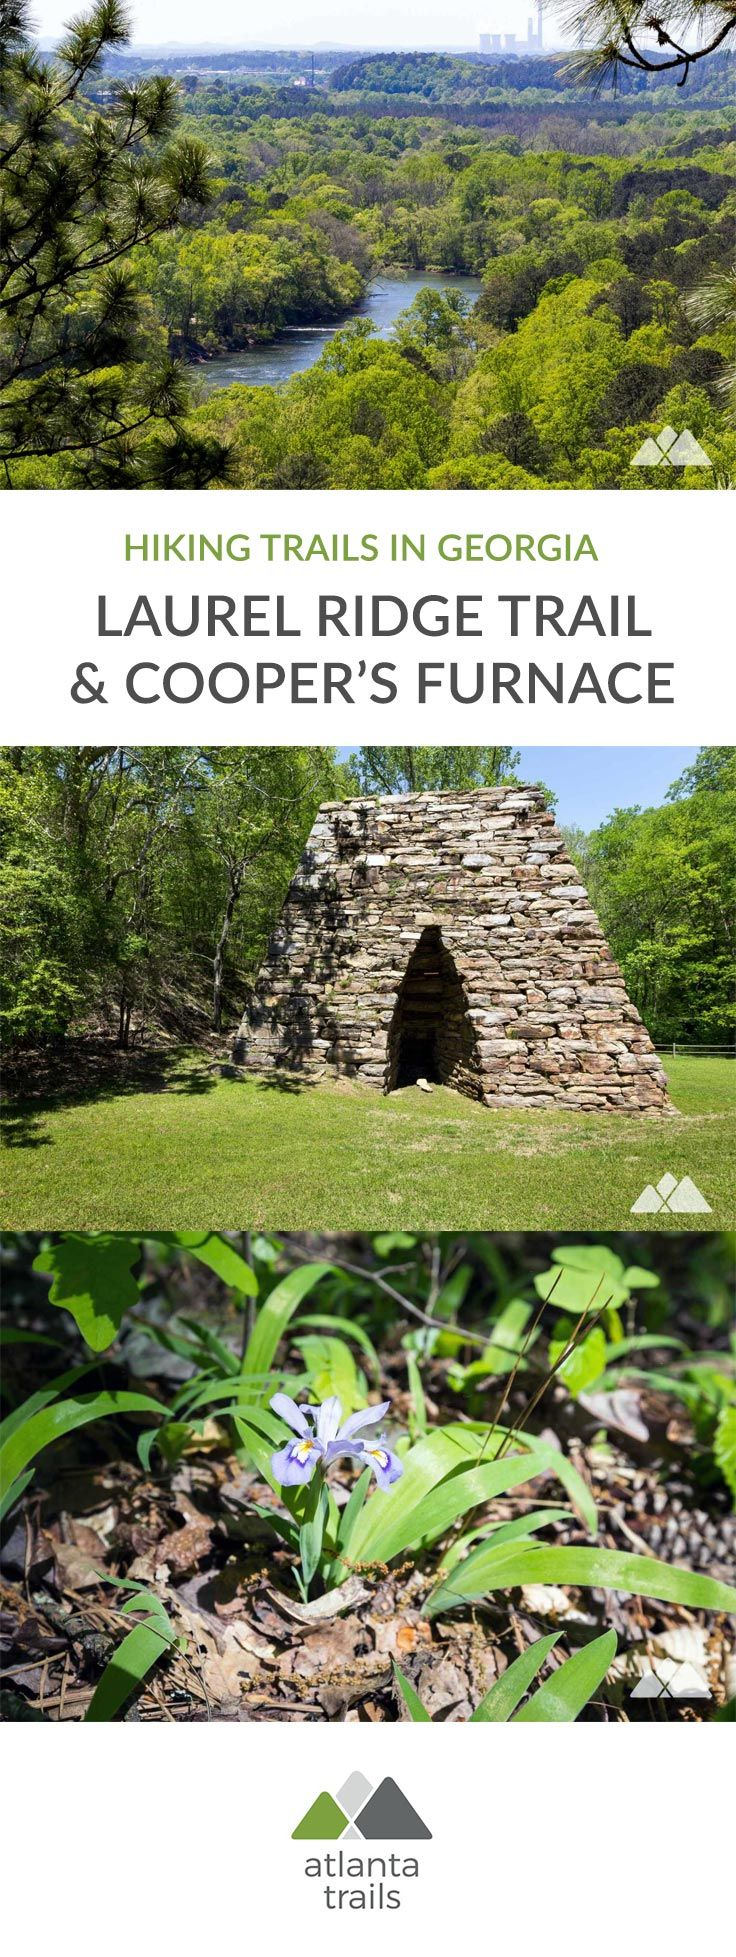 Hike a scenic loop on the Laurel Ridge Trail and Cooper's Furnace Trail, exploring a historic, stacked-stone iron furnace and climbing to high-elevation views of Allatoona Lake, the Etowah River and Allatoona Dam. #hiking #trailrunning #atlanta #georgia #travel #outdoors #adventure